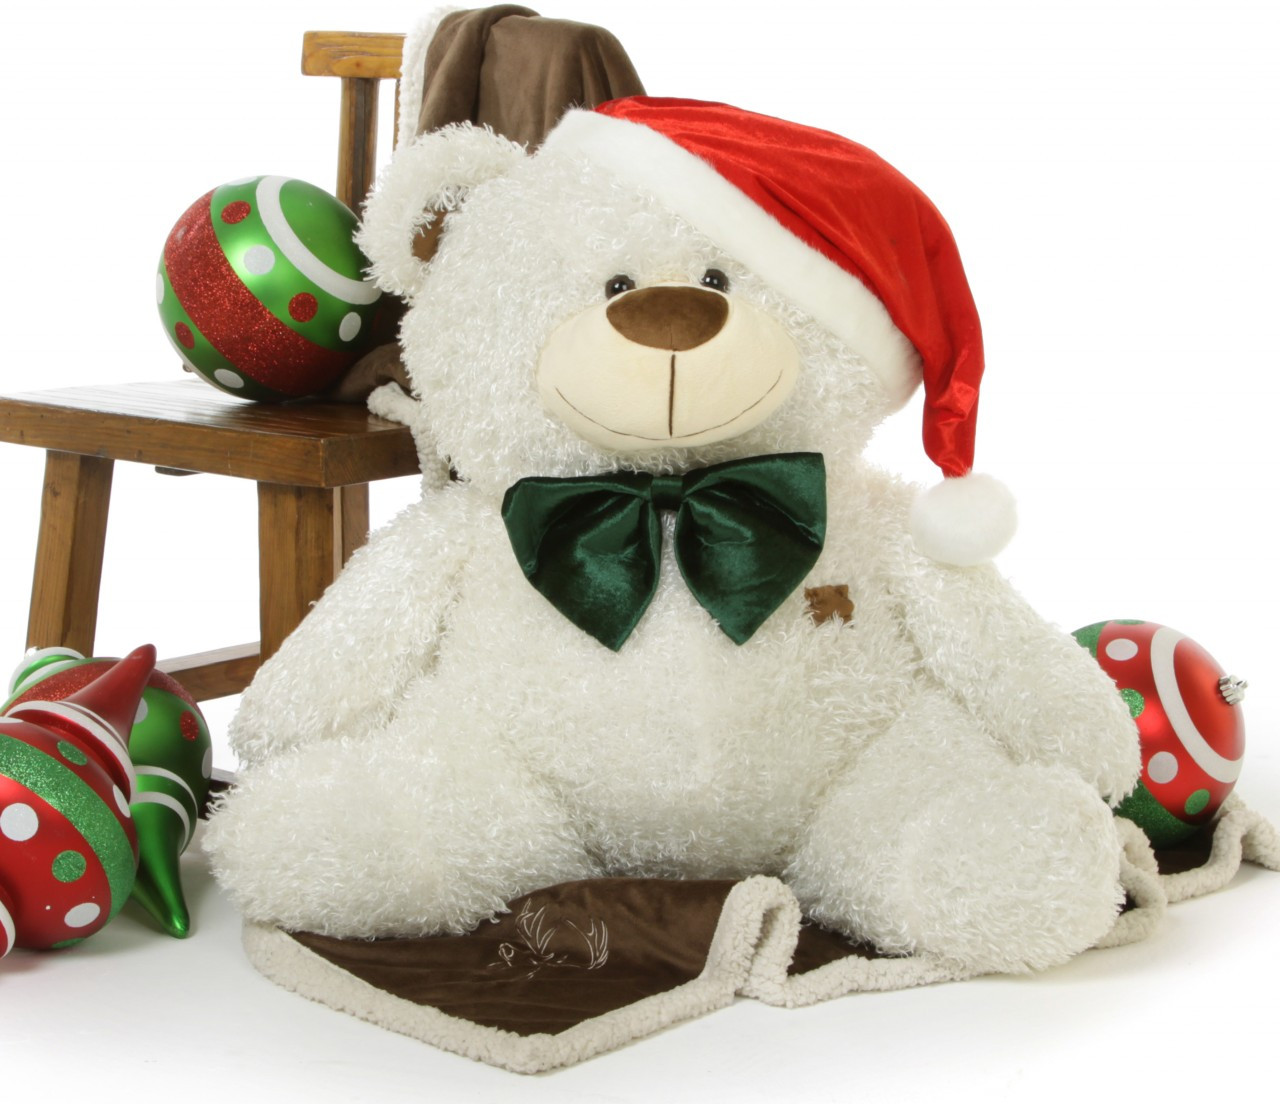 Big White Christmas Teddy Bear Joy Fluffy Shags, 35 inches of Holiday Cheer!